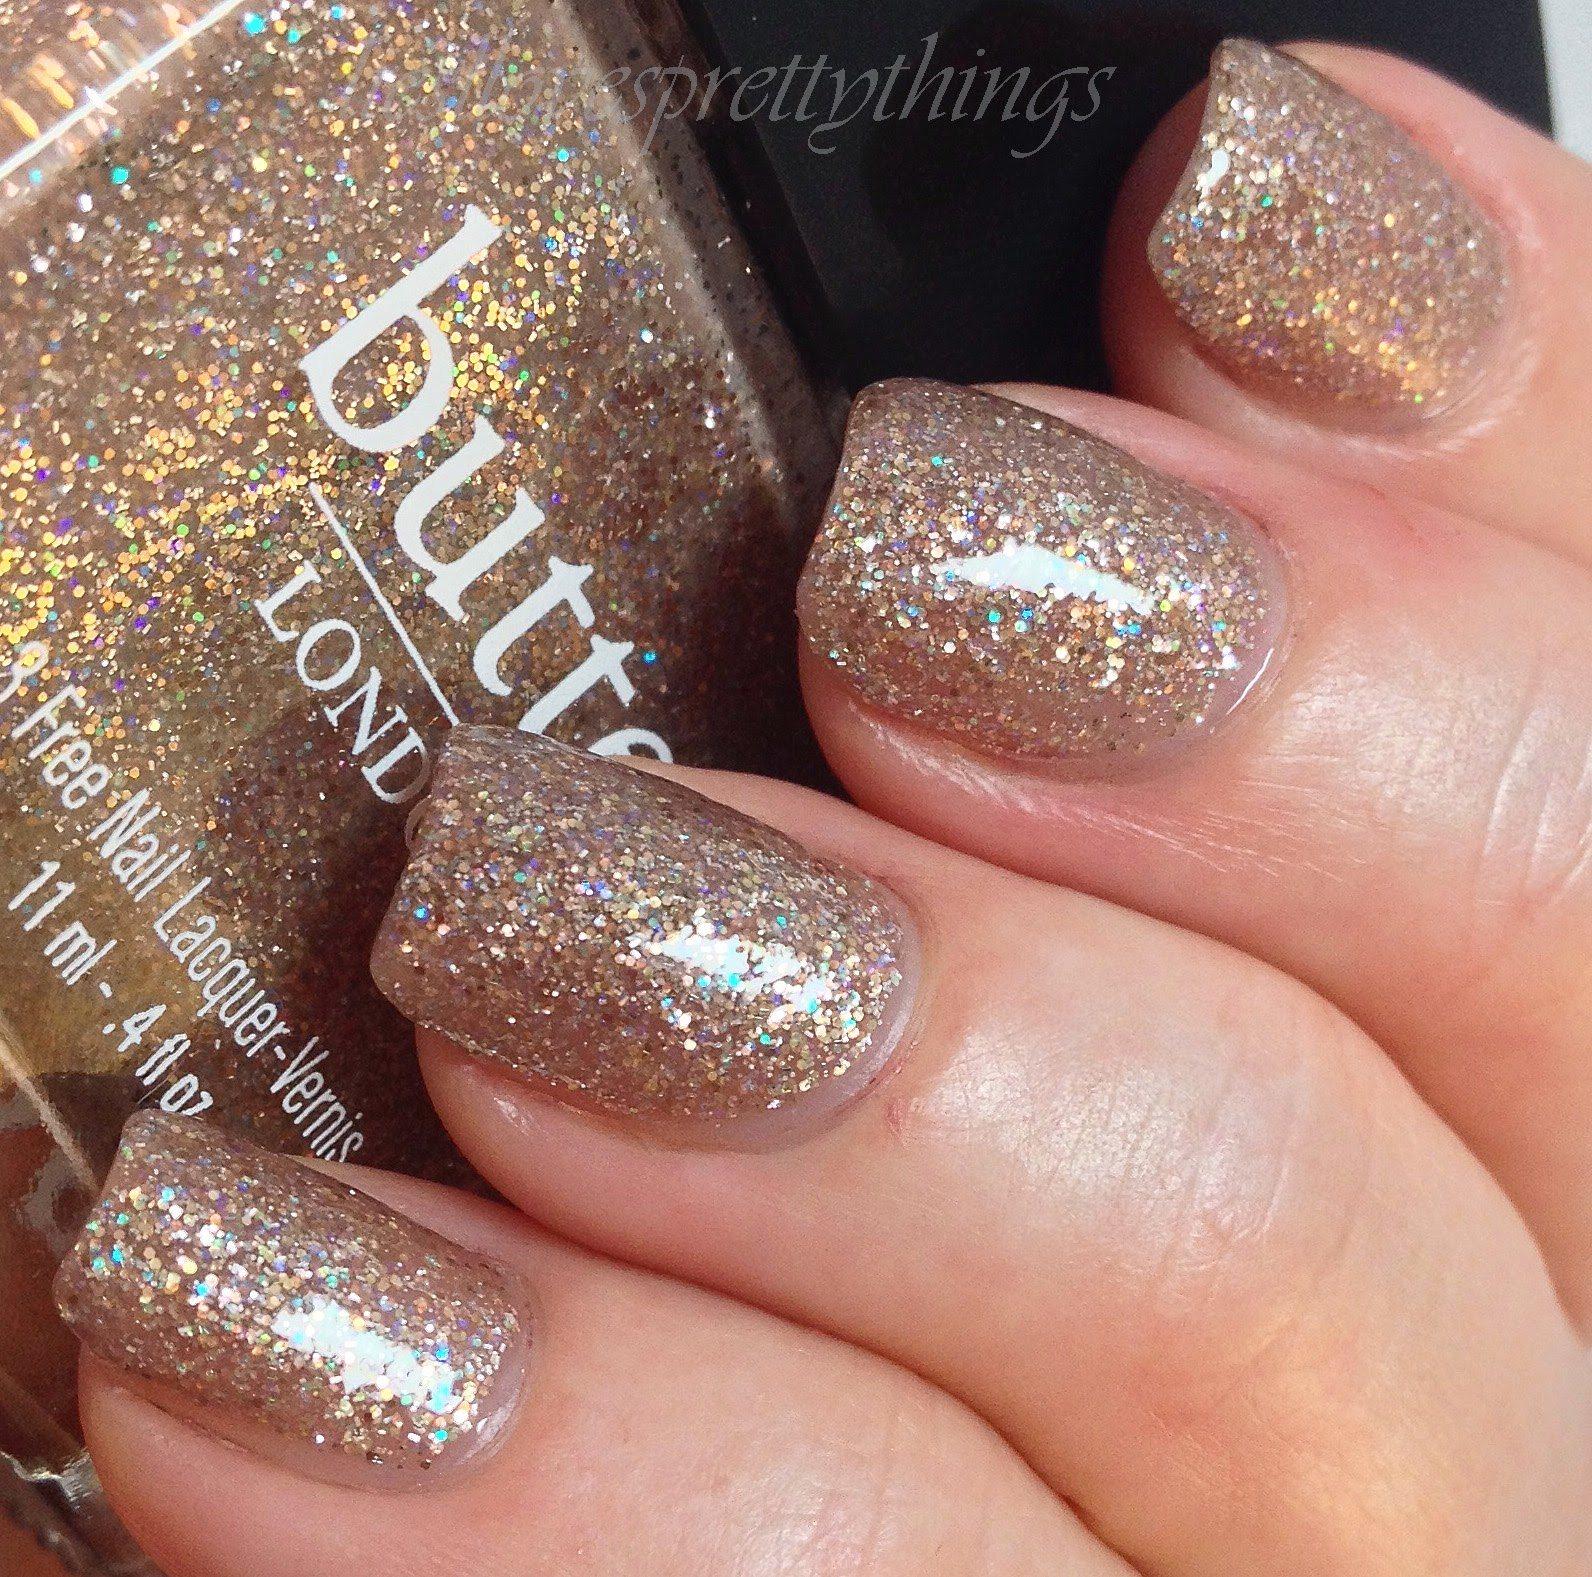 Butter London Caramel Cafe